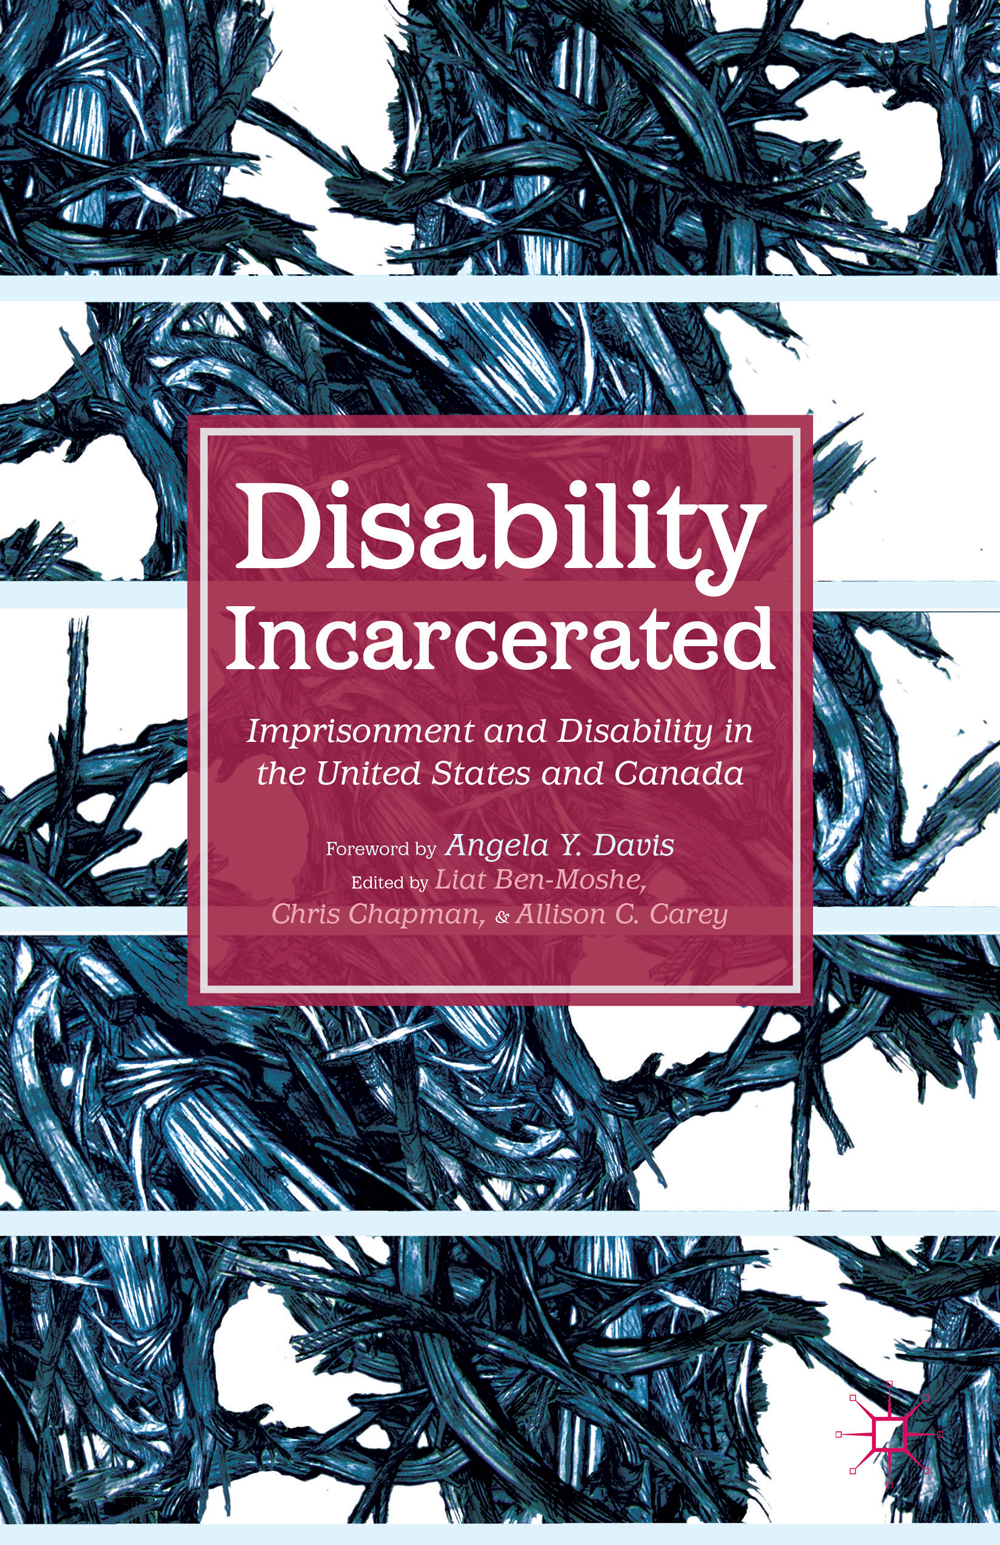 Book Cover of Disability Incarcerated